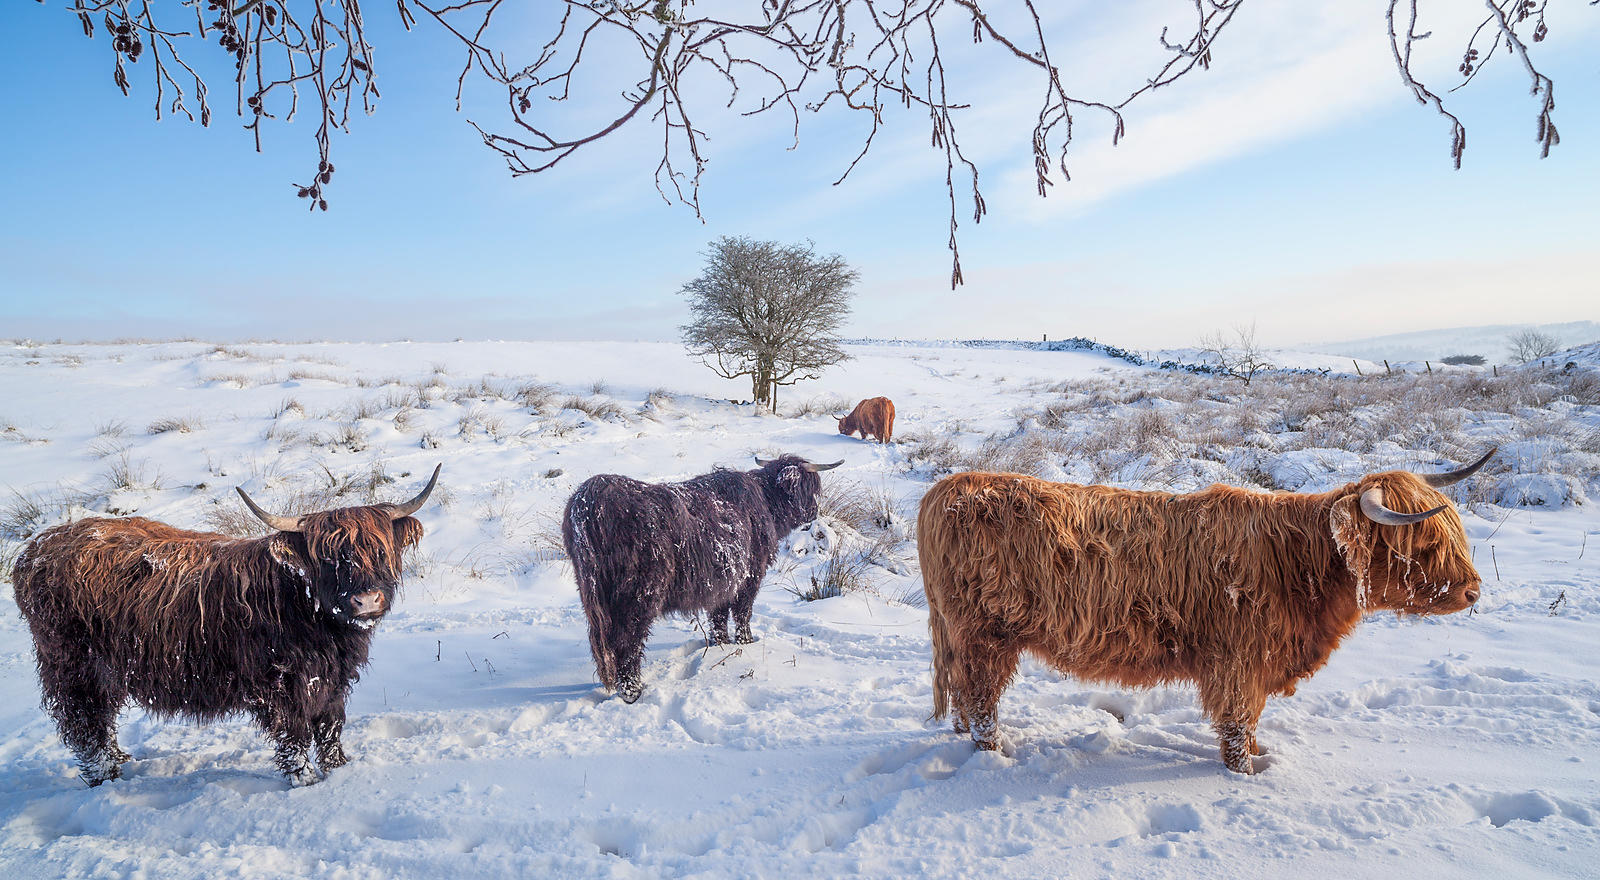 Highland cattle in snow on Curbar Edge